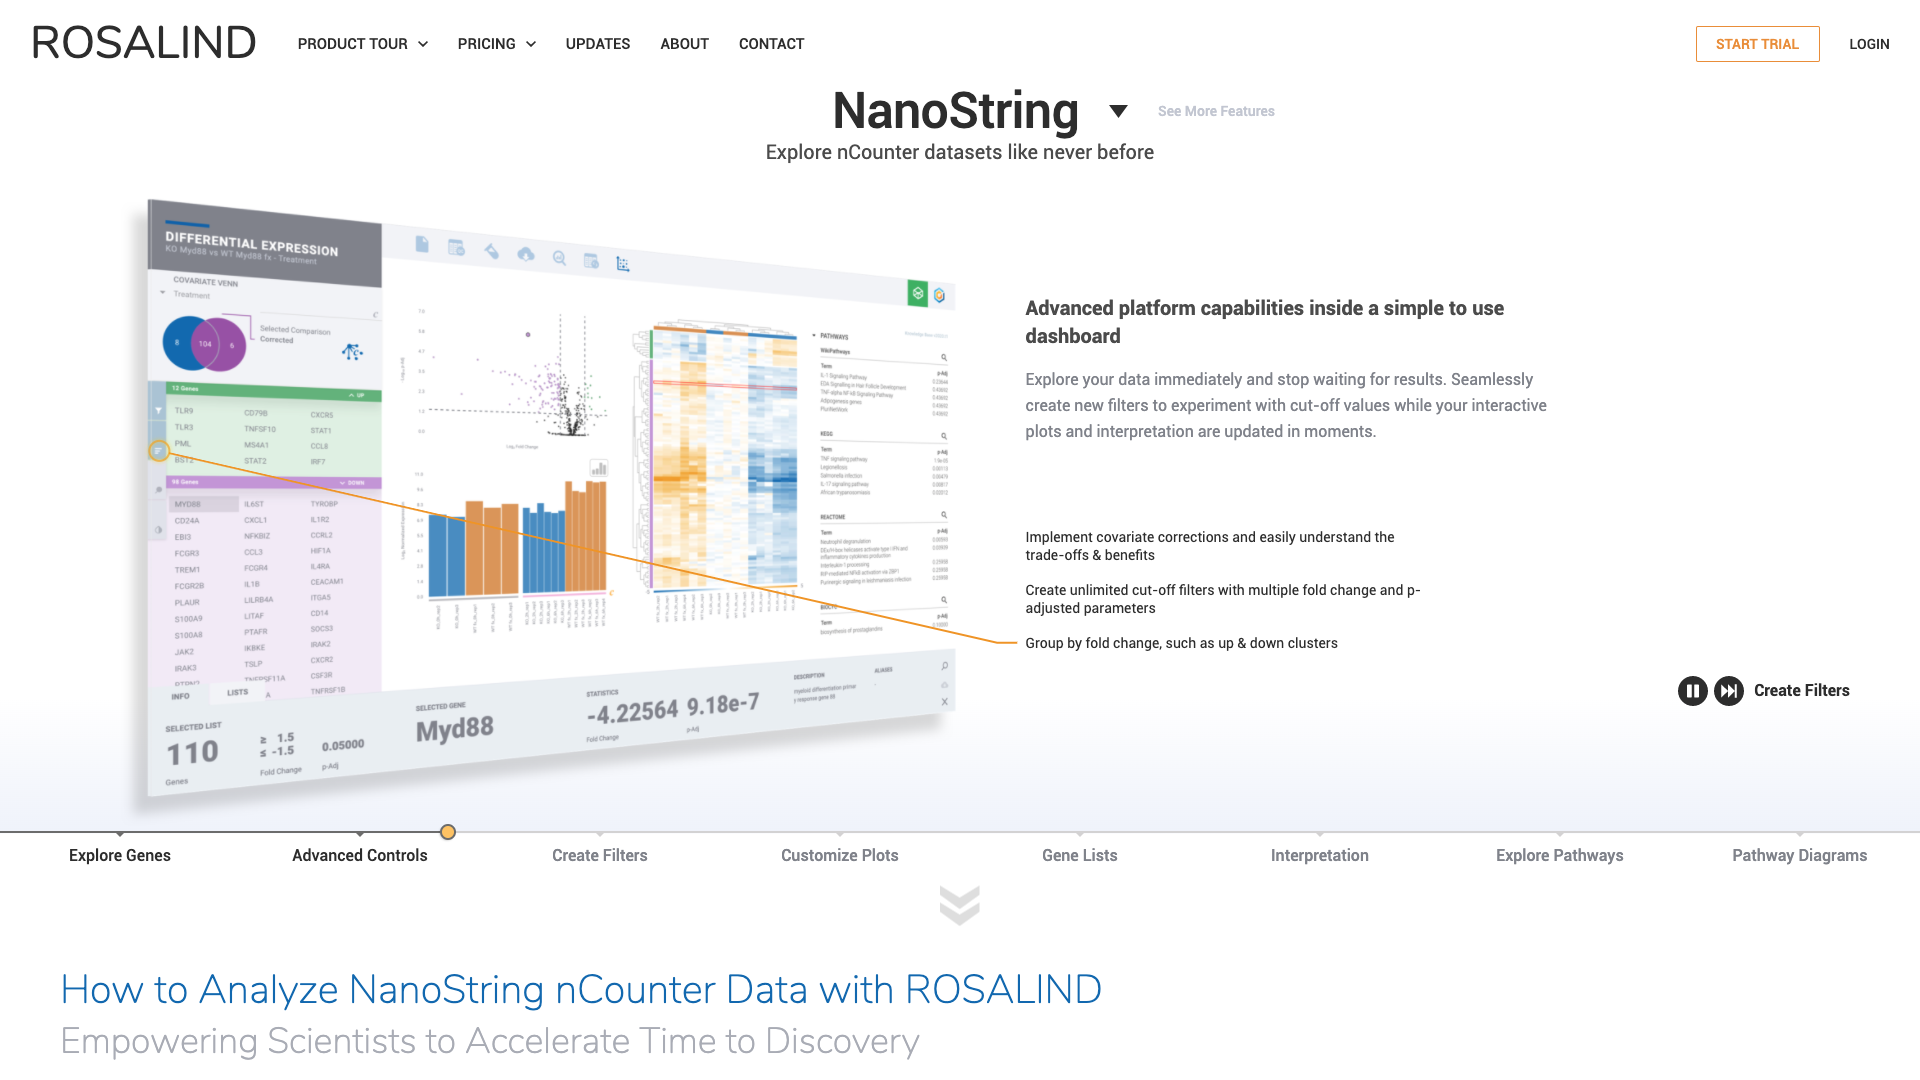 Canopy chooses ROSALIND for Interactive Data Analysis & Real-Time Collaboration